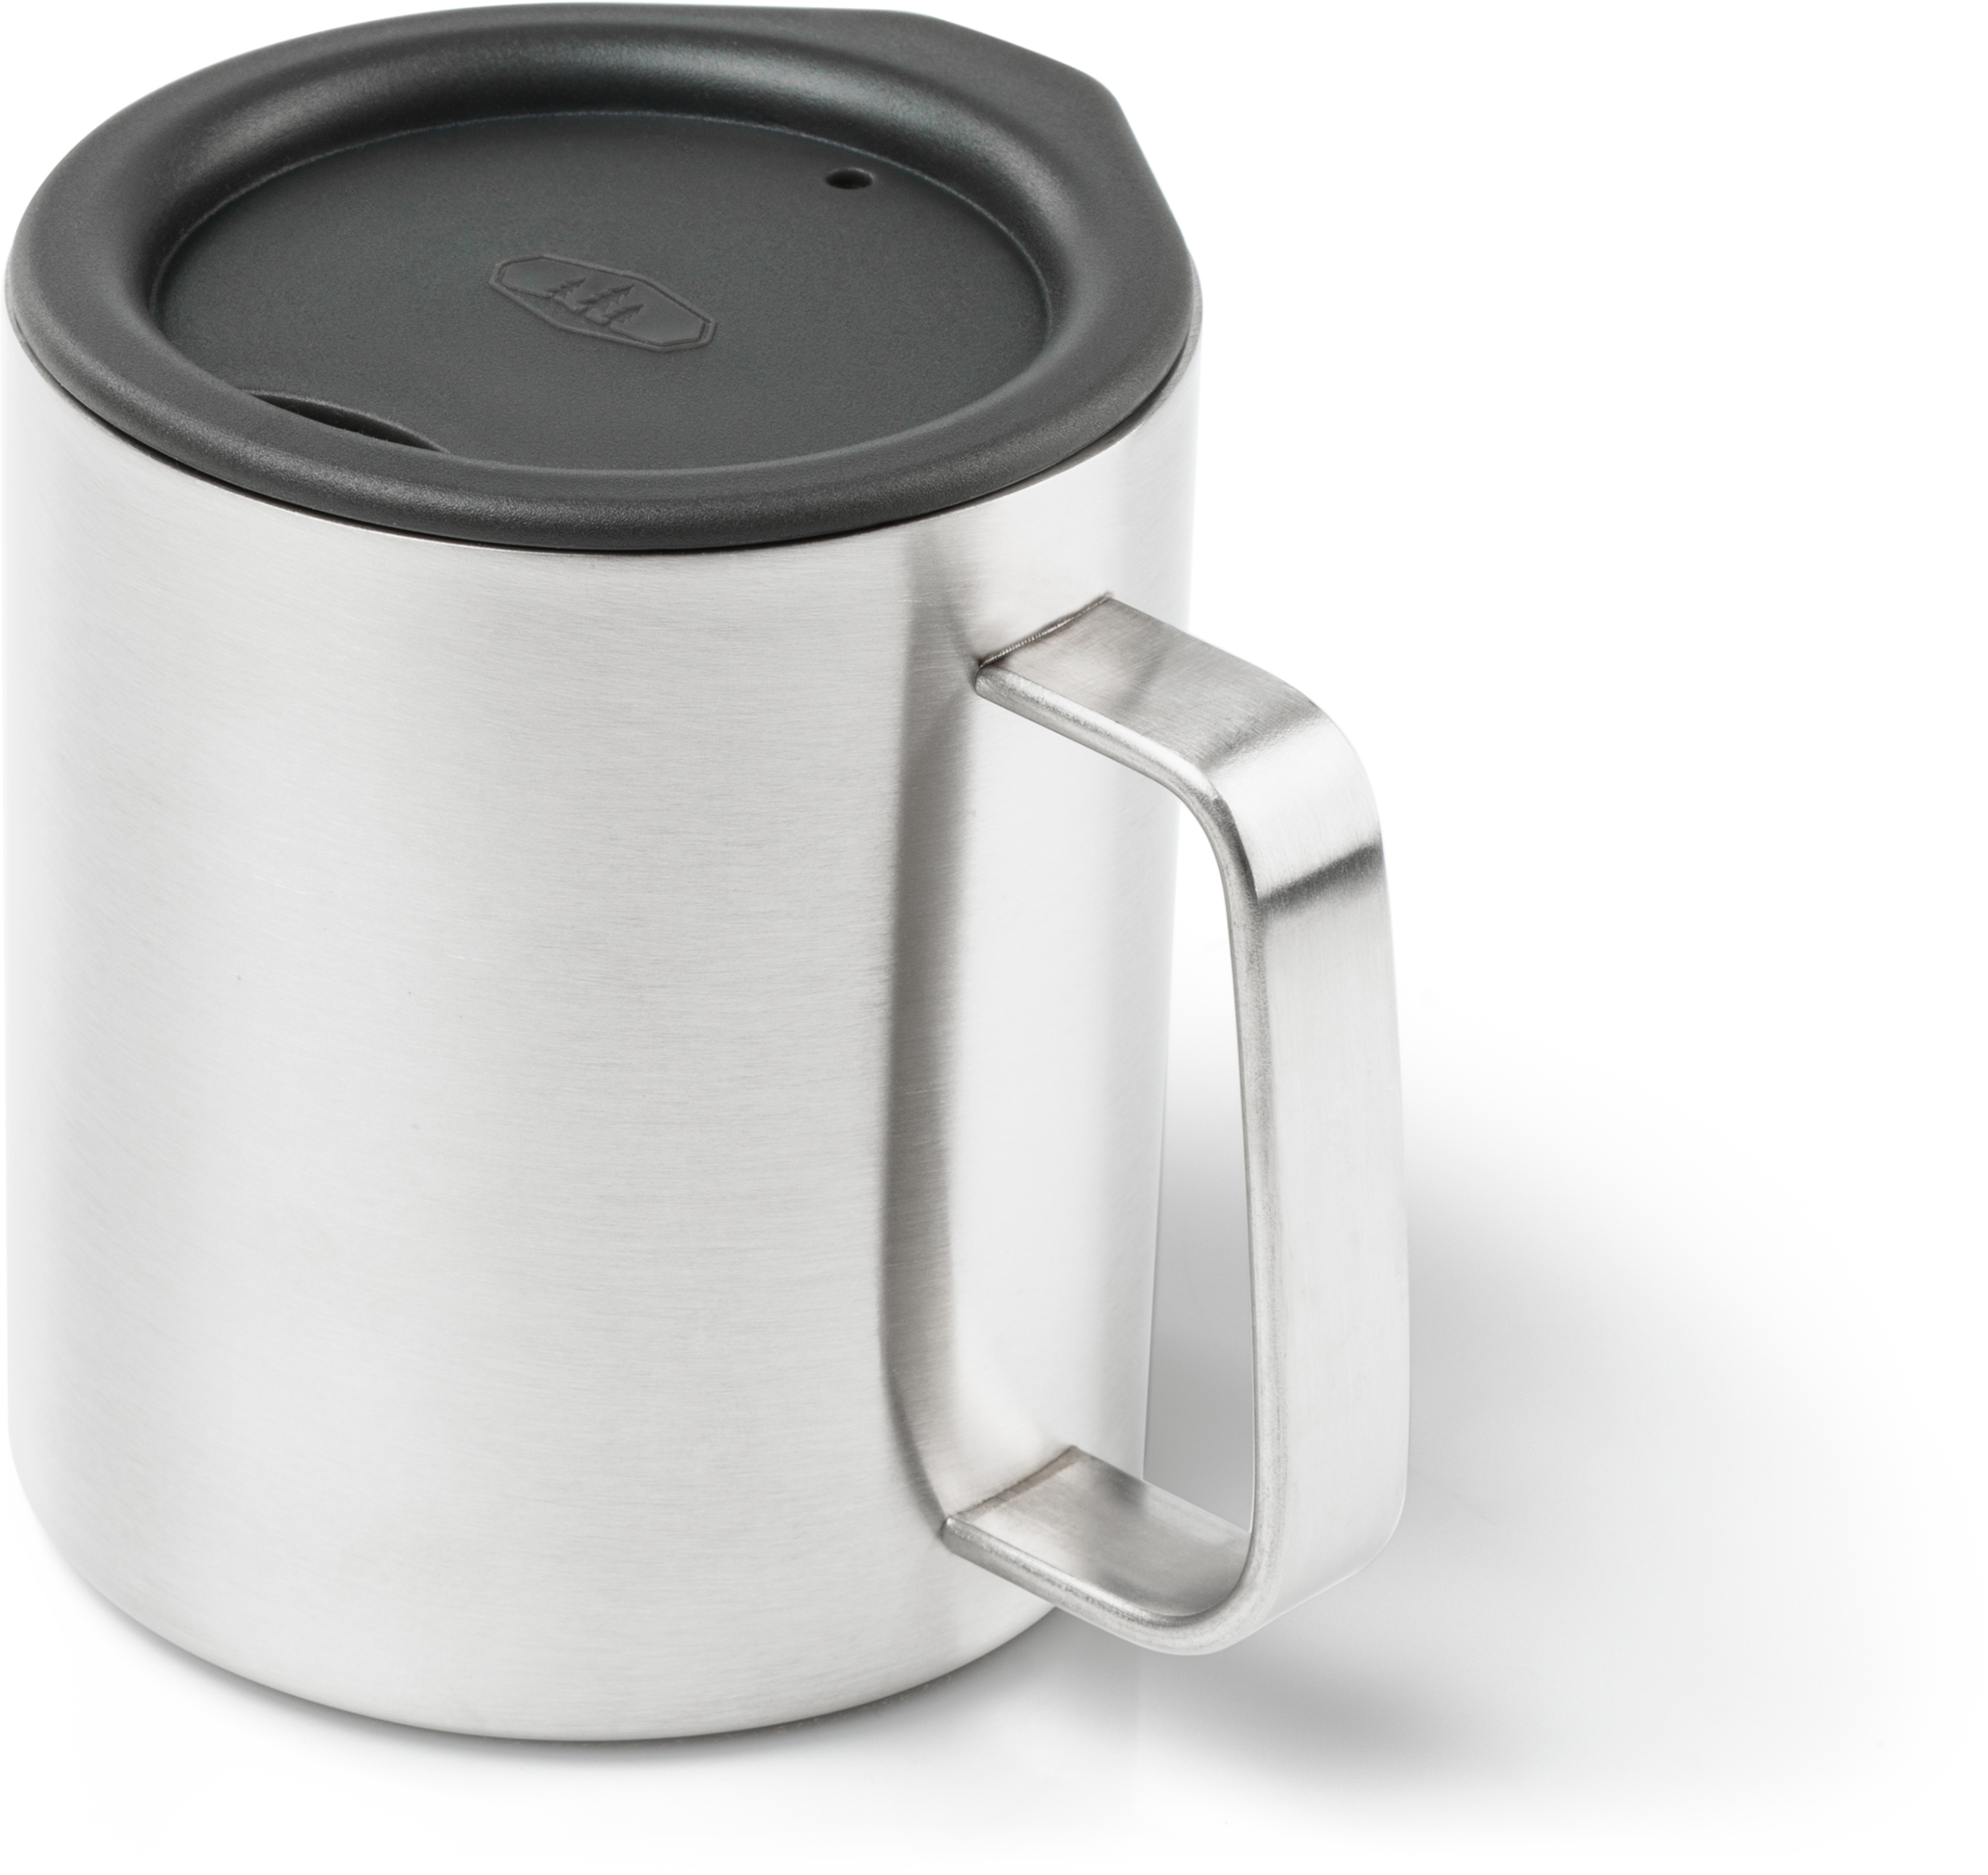 Camping Mugs And Cups Stainless Steel Travel Collapsible Cup